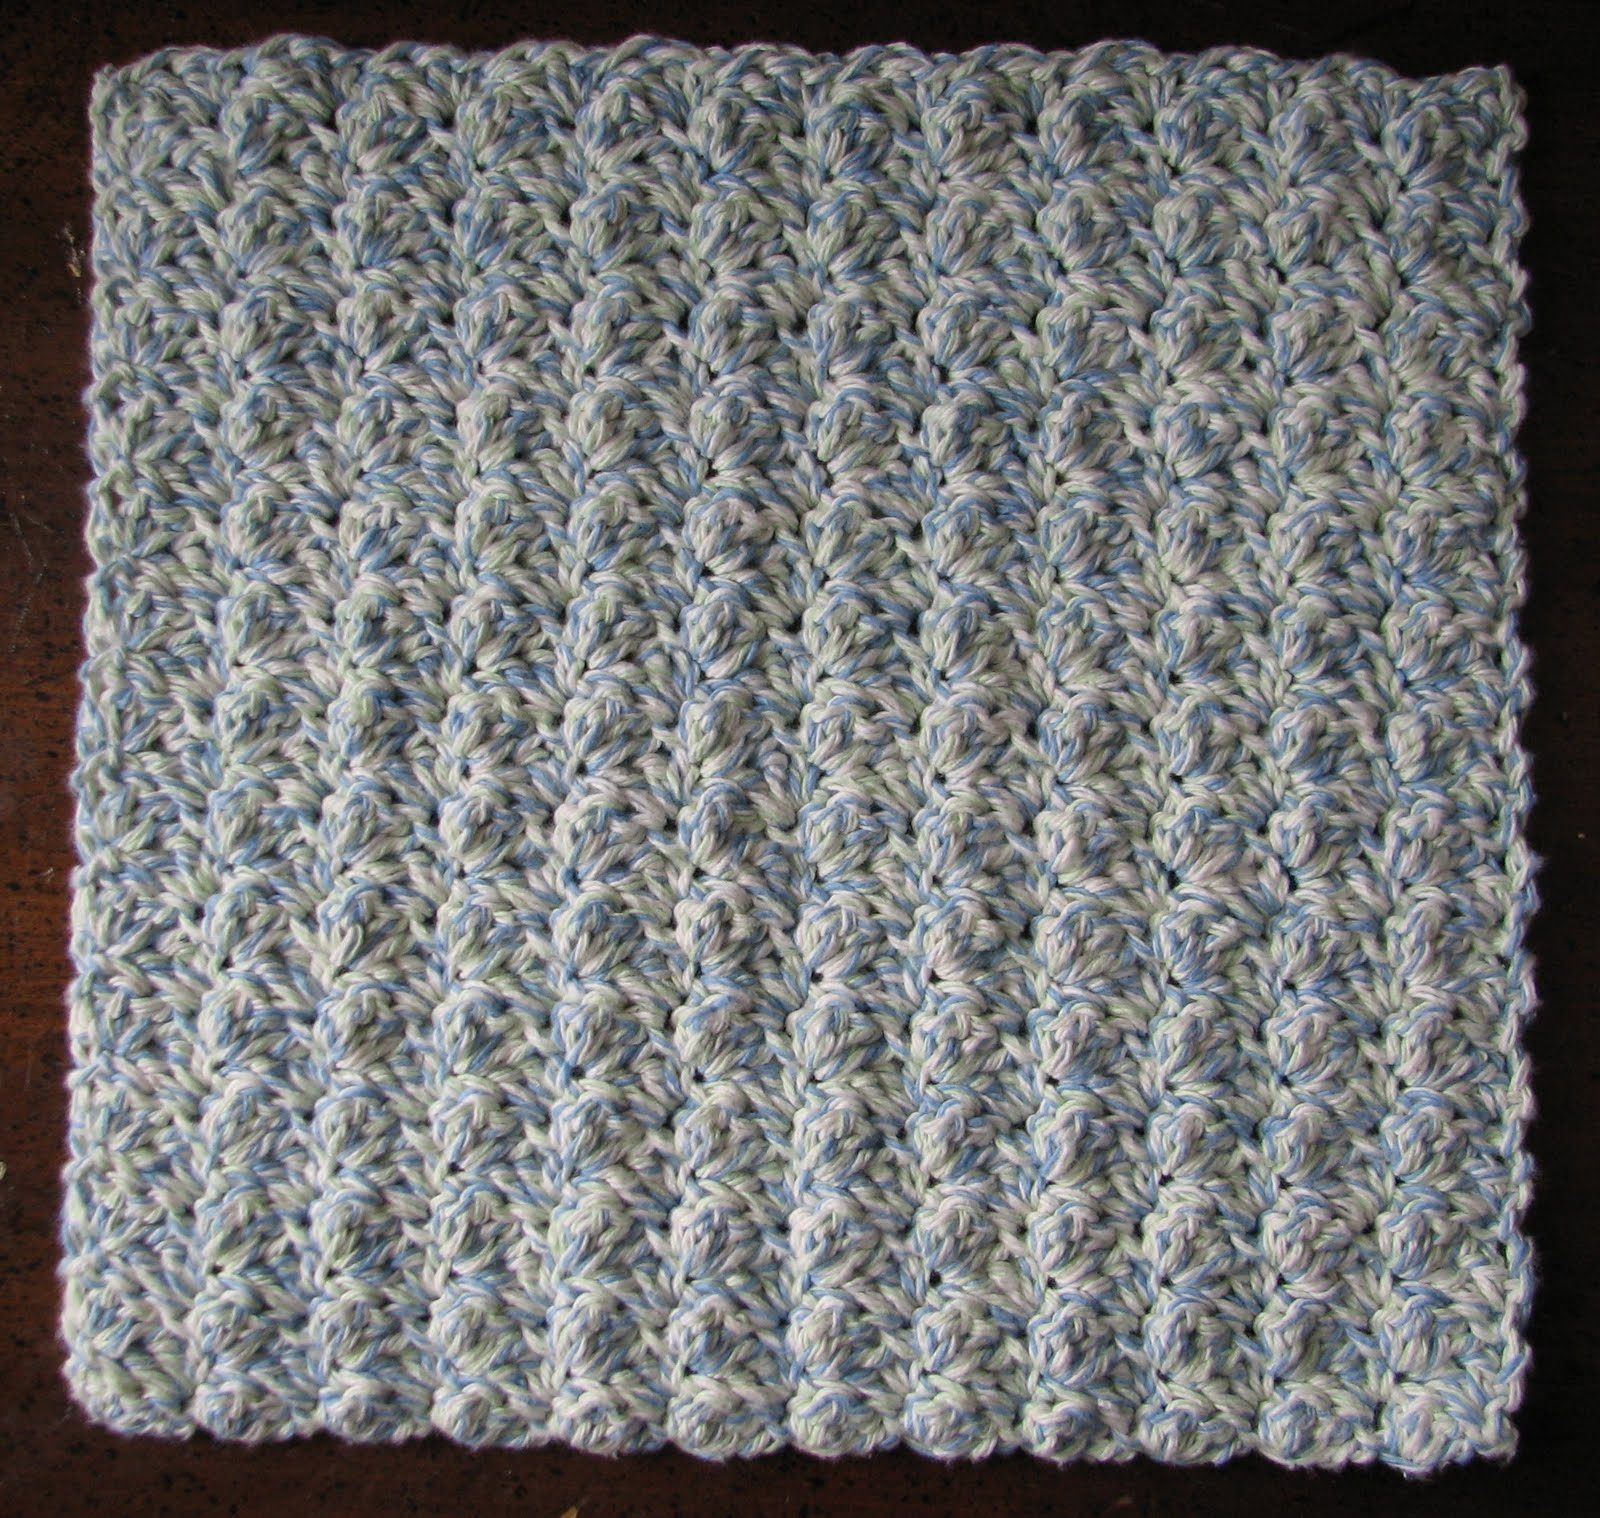 Crochet Patterns Ripple : How to Crochet a scarf with the ripple stitch ? Knitting Crochet